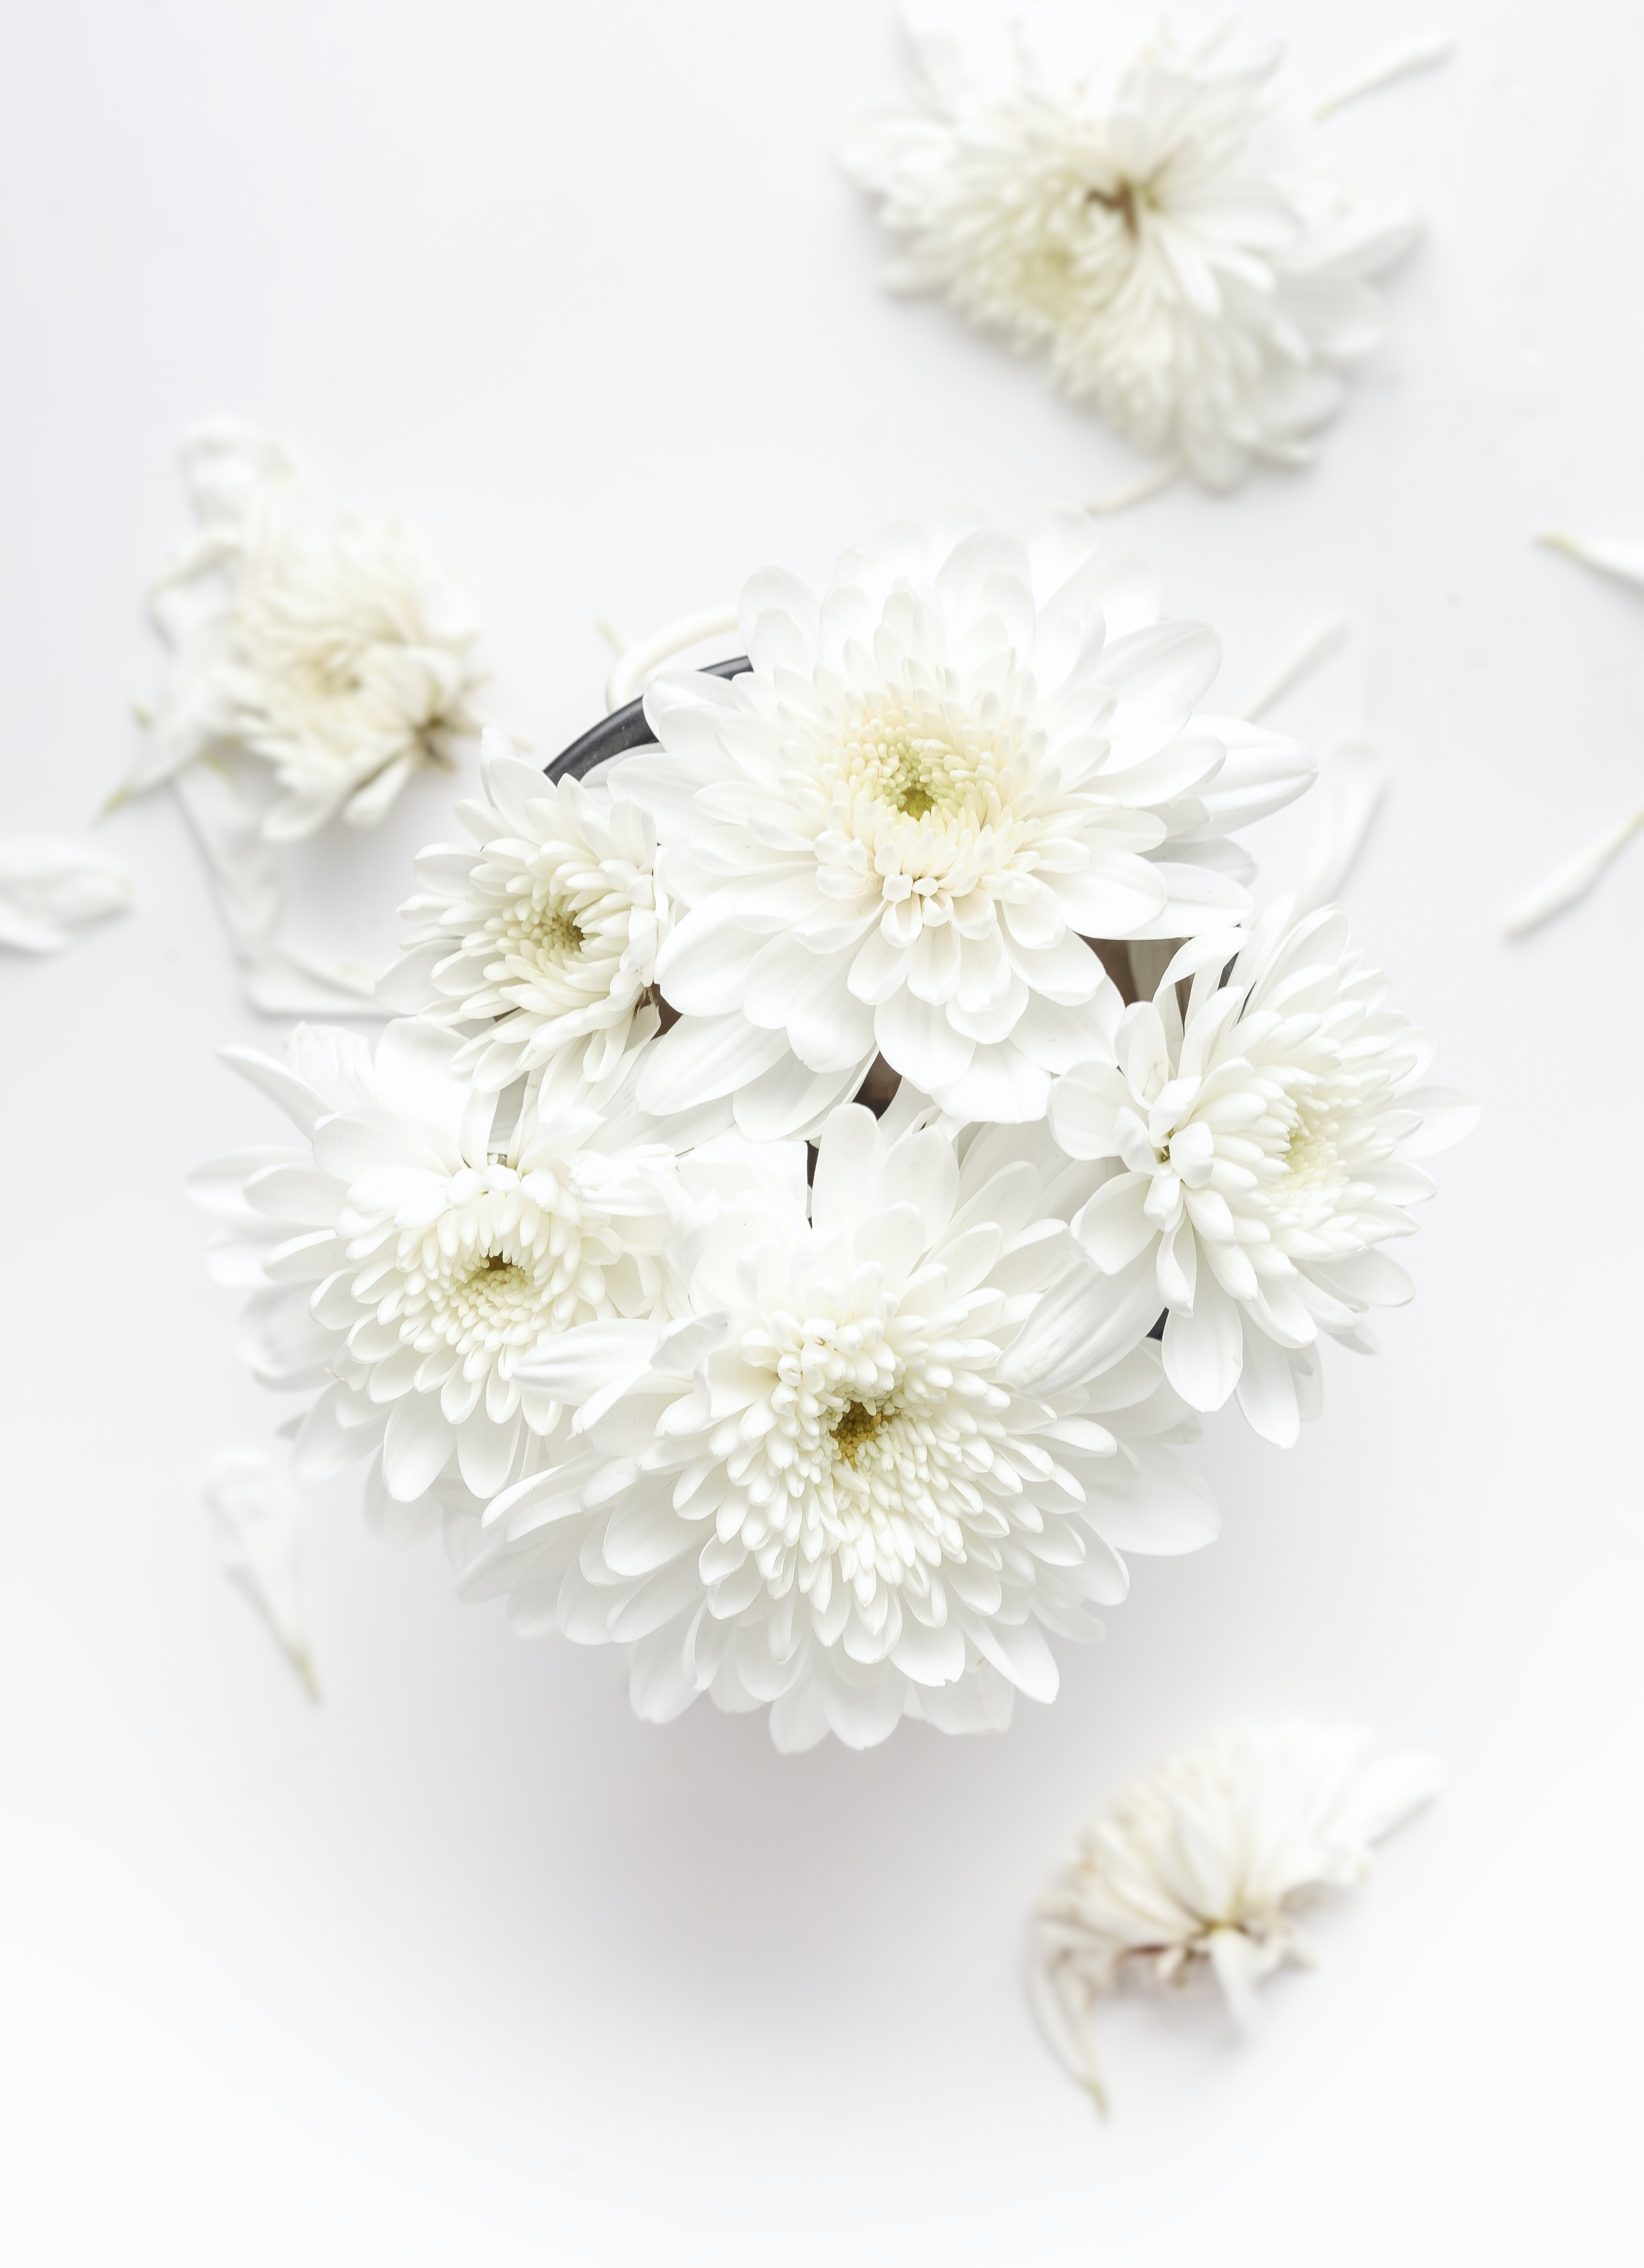 White Flower Pictures Download Free Images on